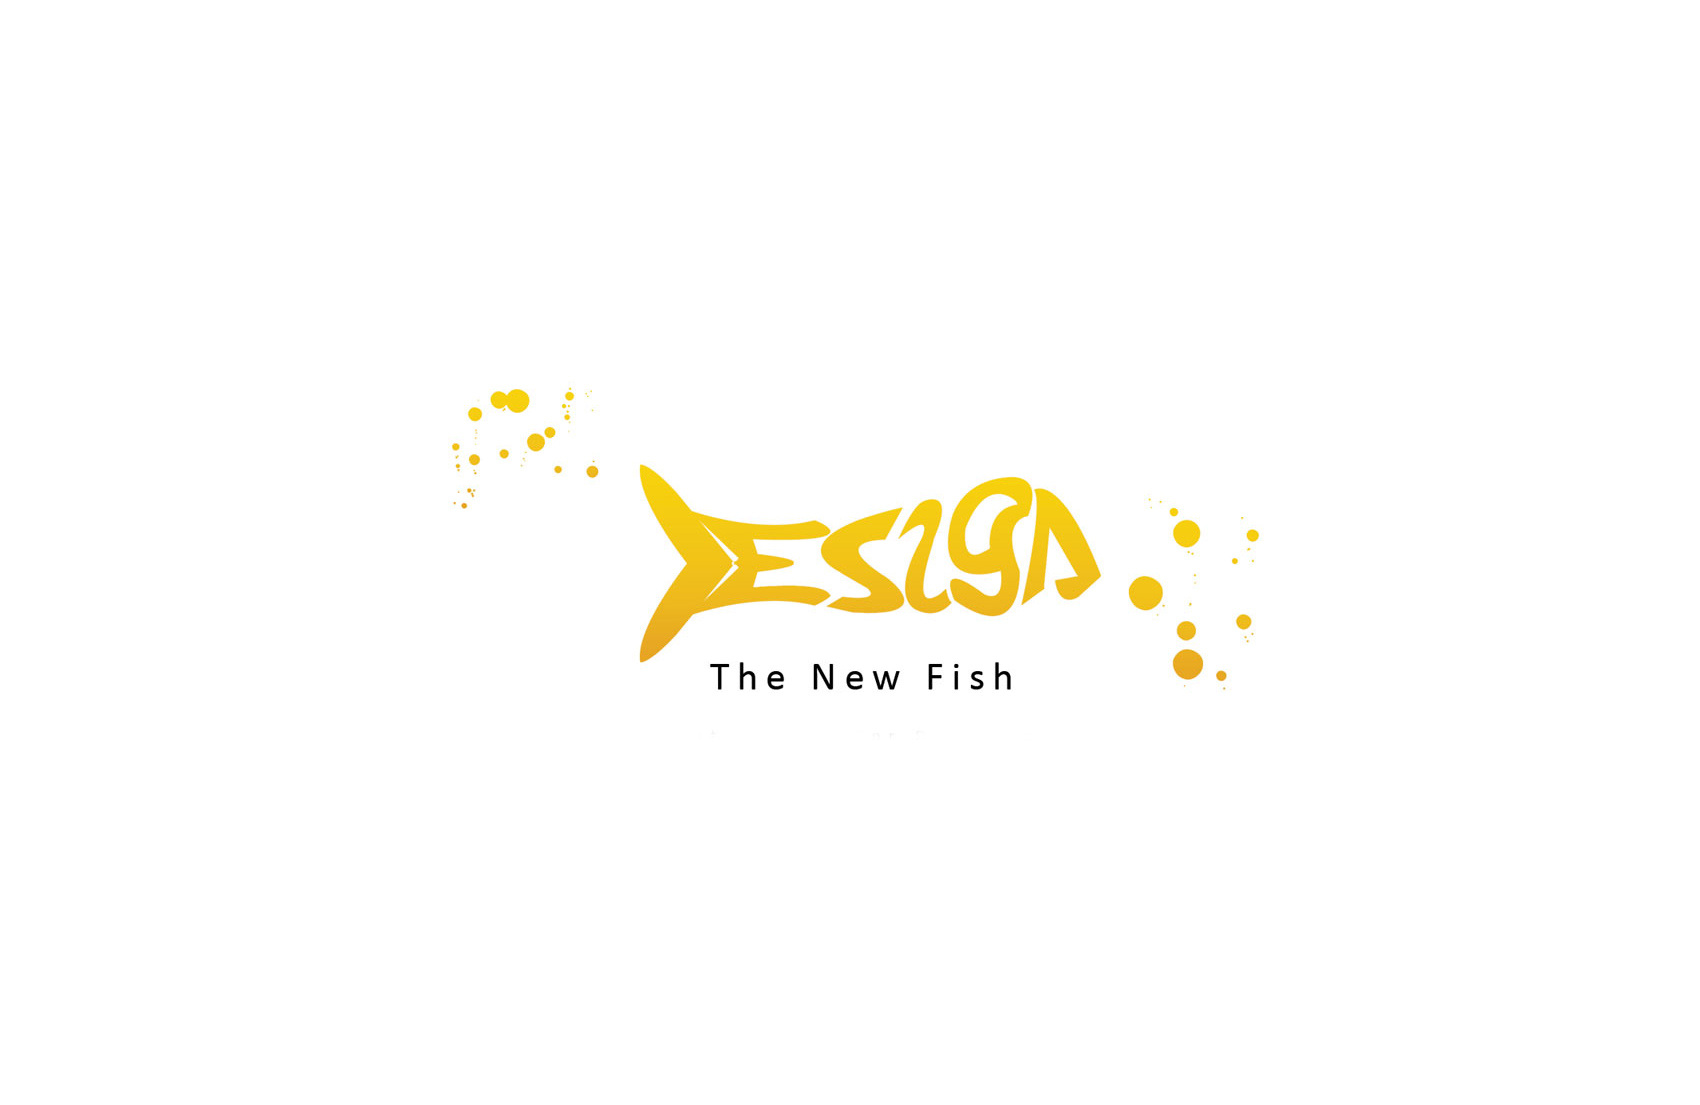 Thenewfish Designing